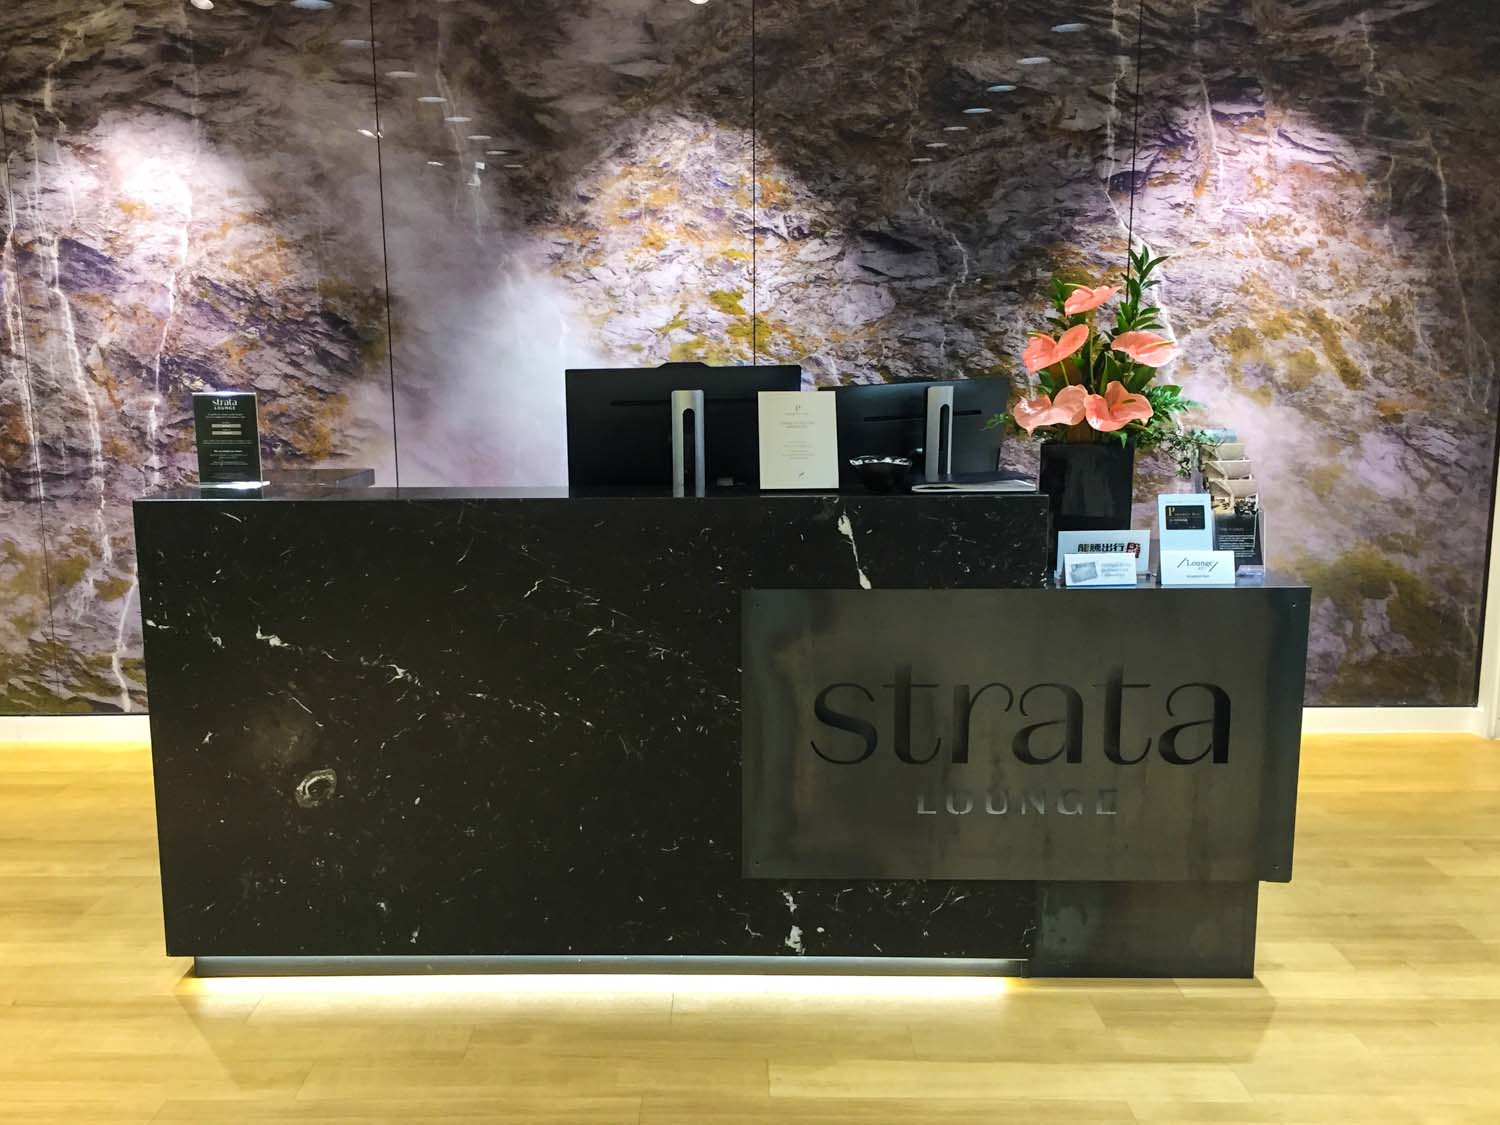 strata lounge auckland airport - reception